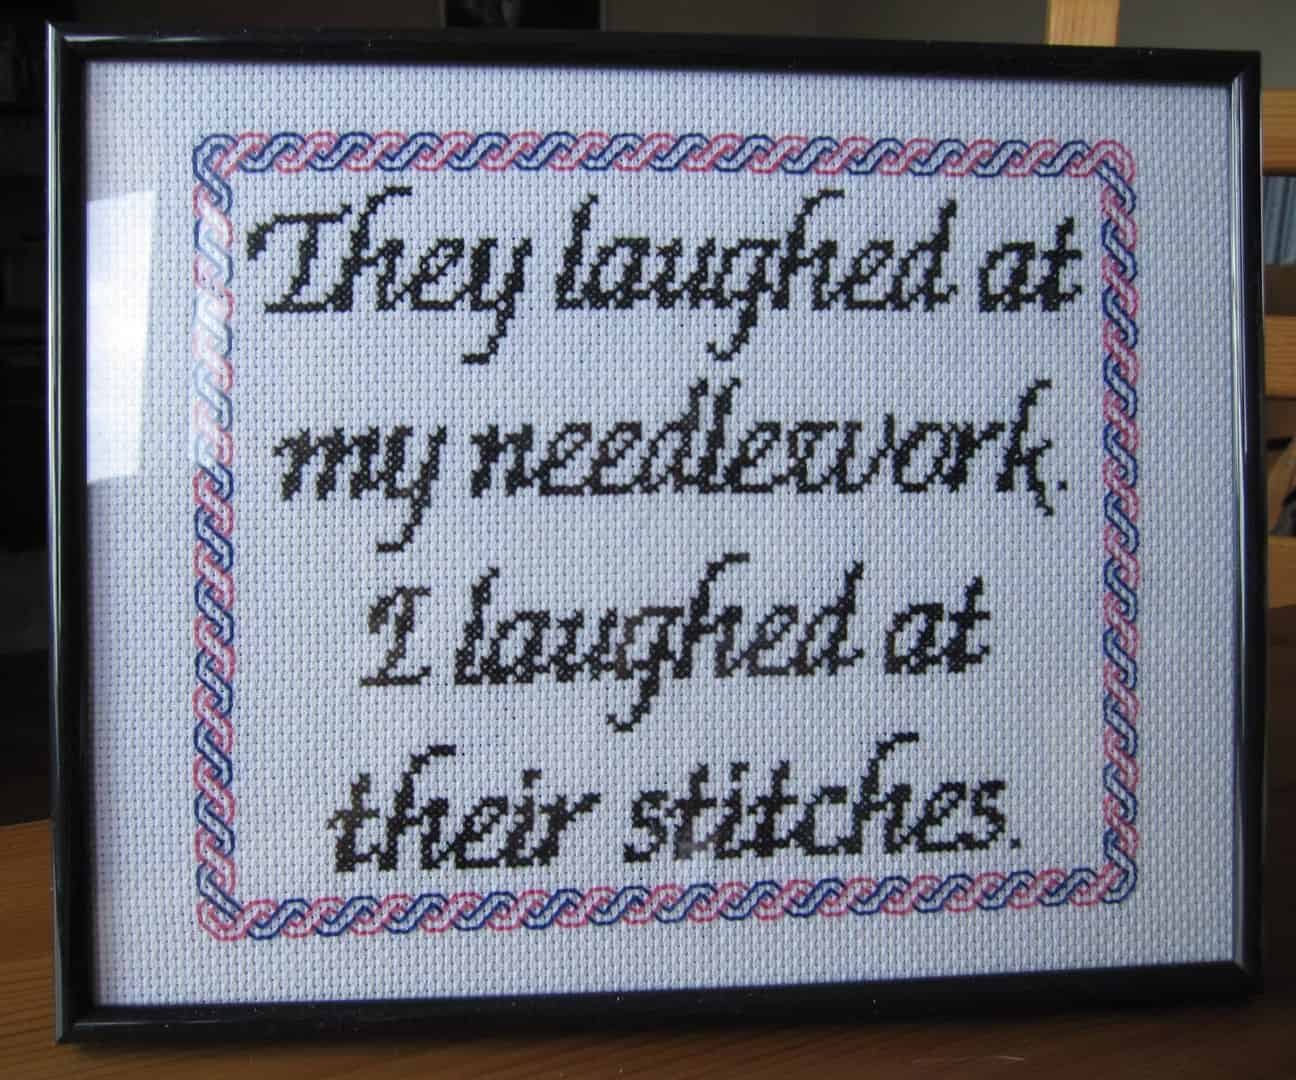 They laughed at my needlework